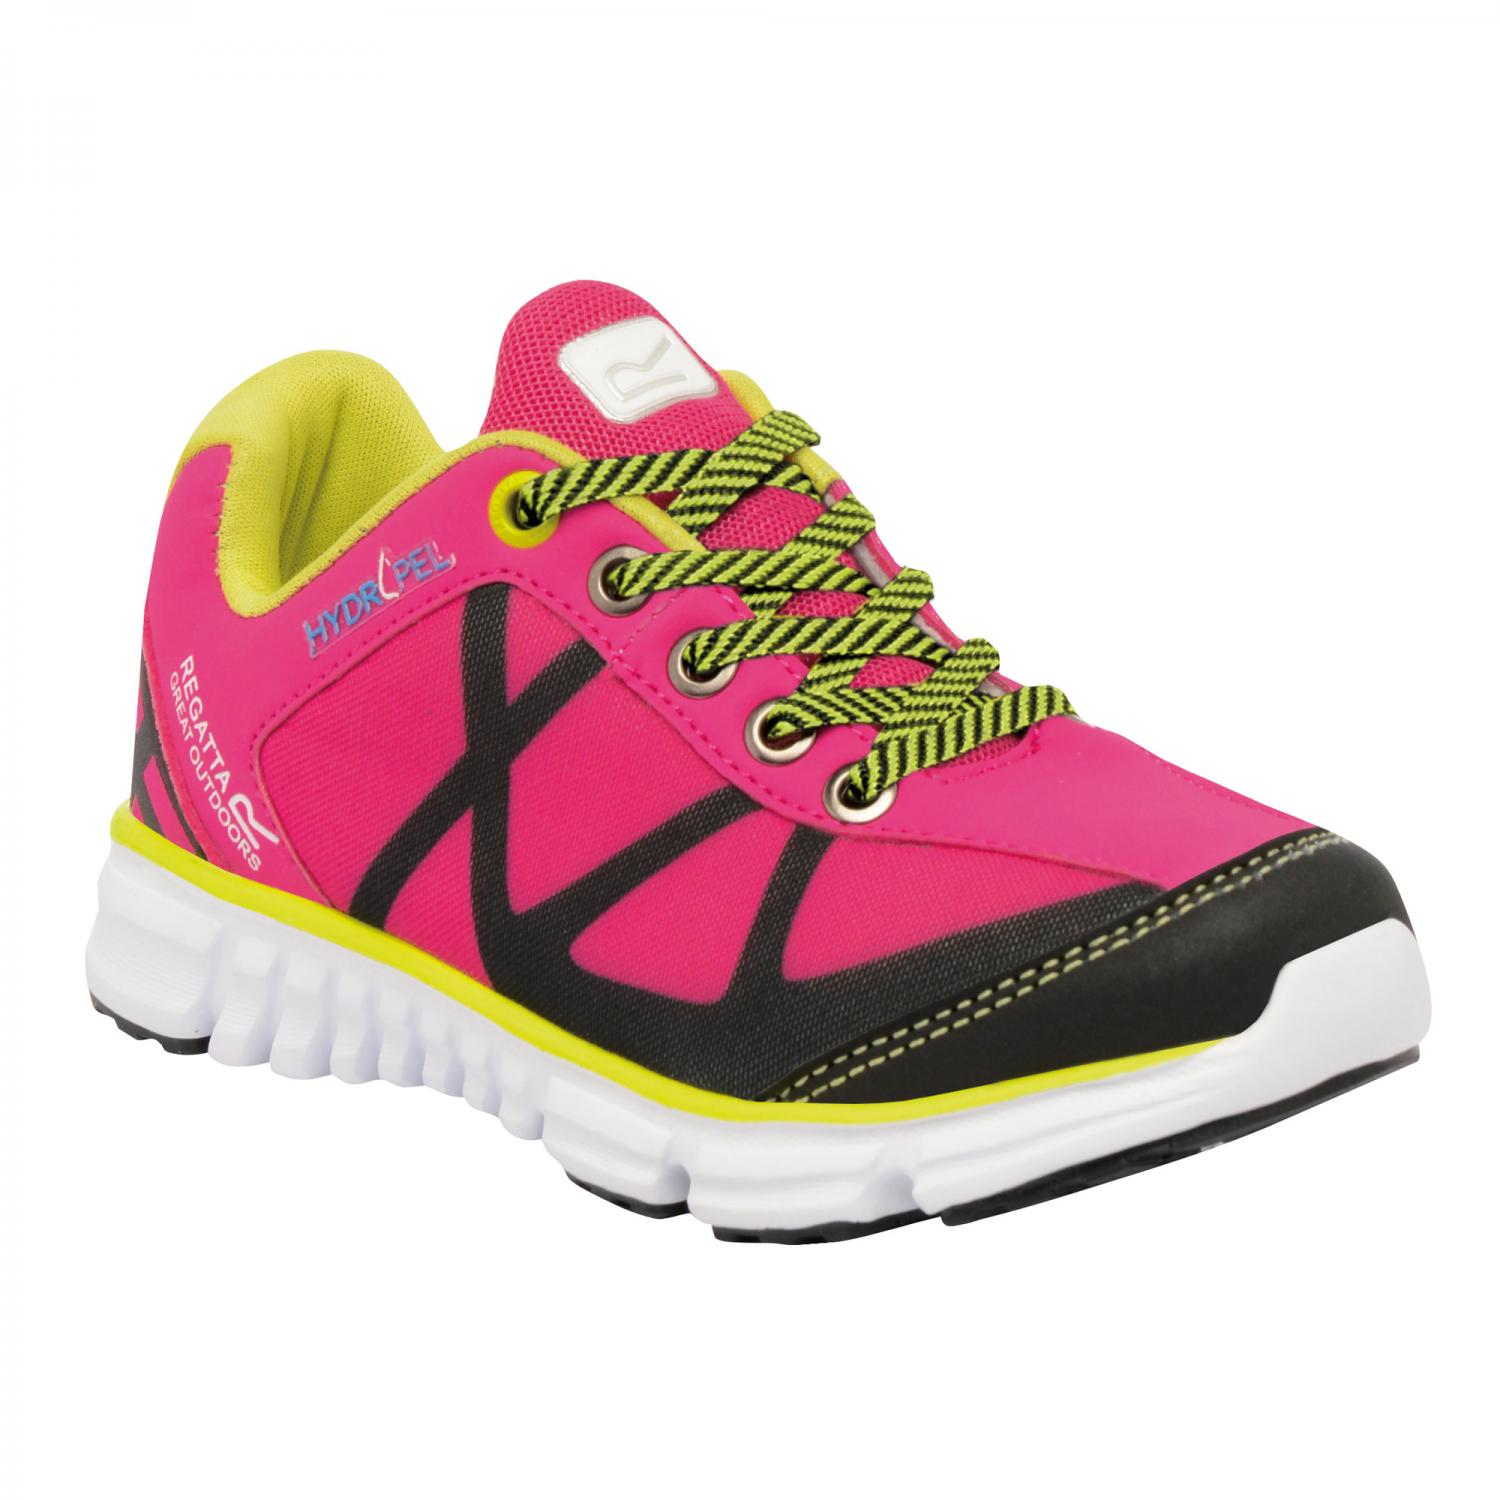 Hyper-Trail Low Junior Shoe Jem Neon